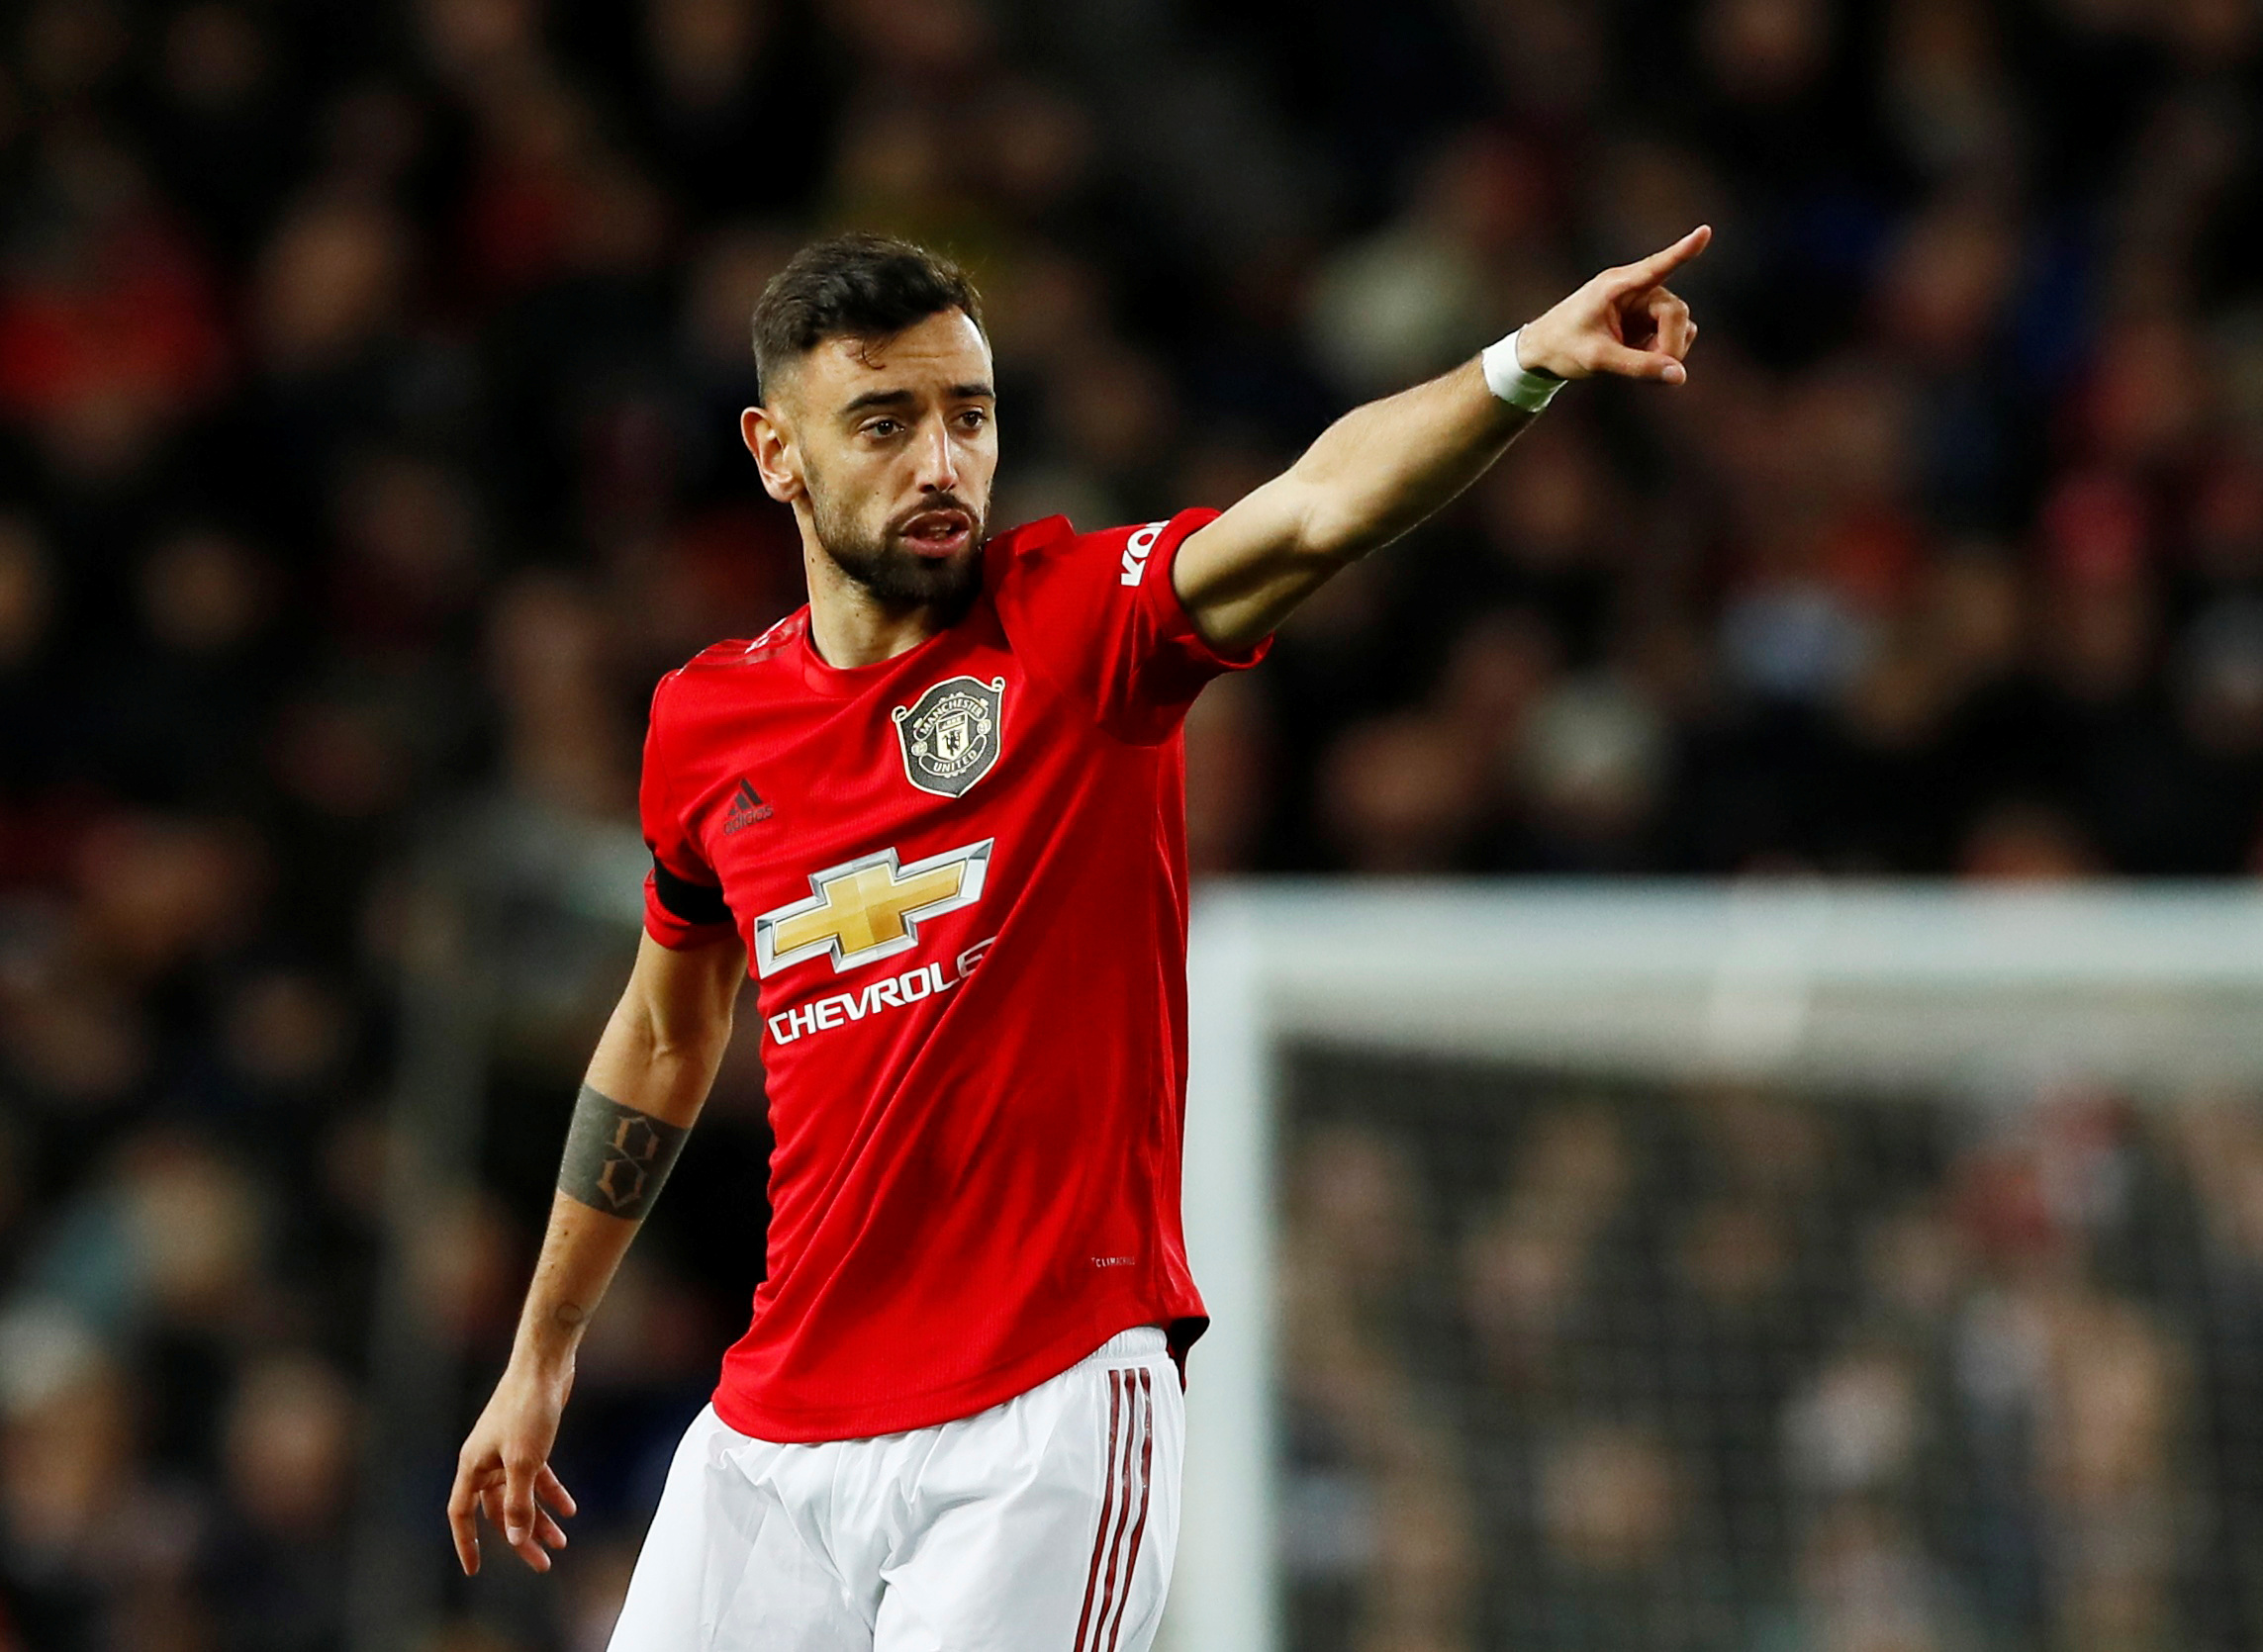 Fernandes has potential to both improve and star in Man United attack